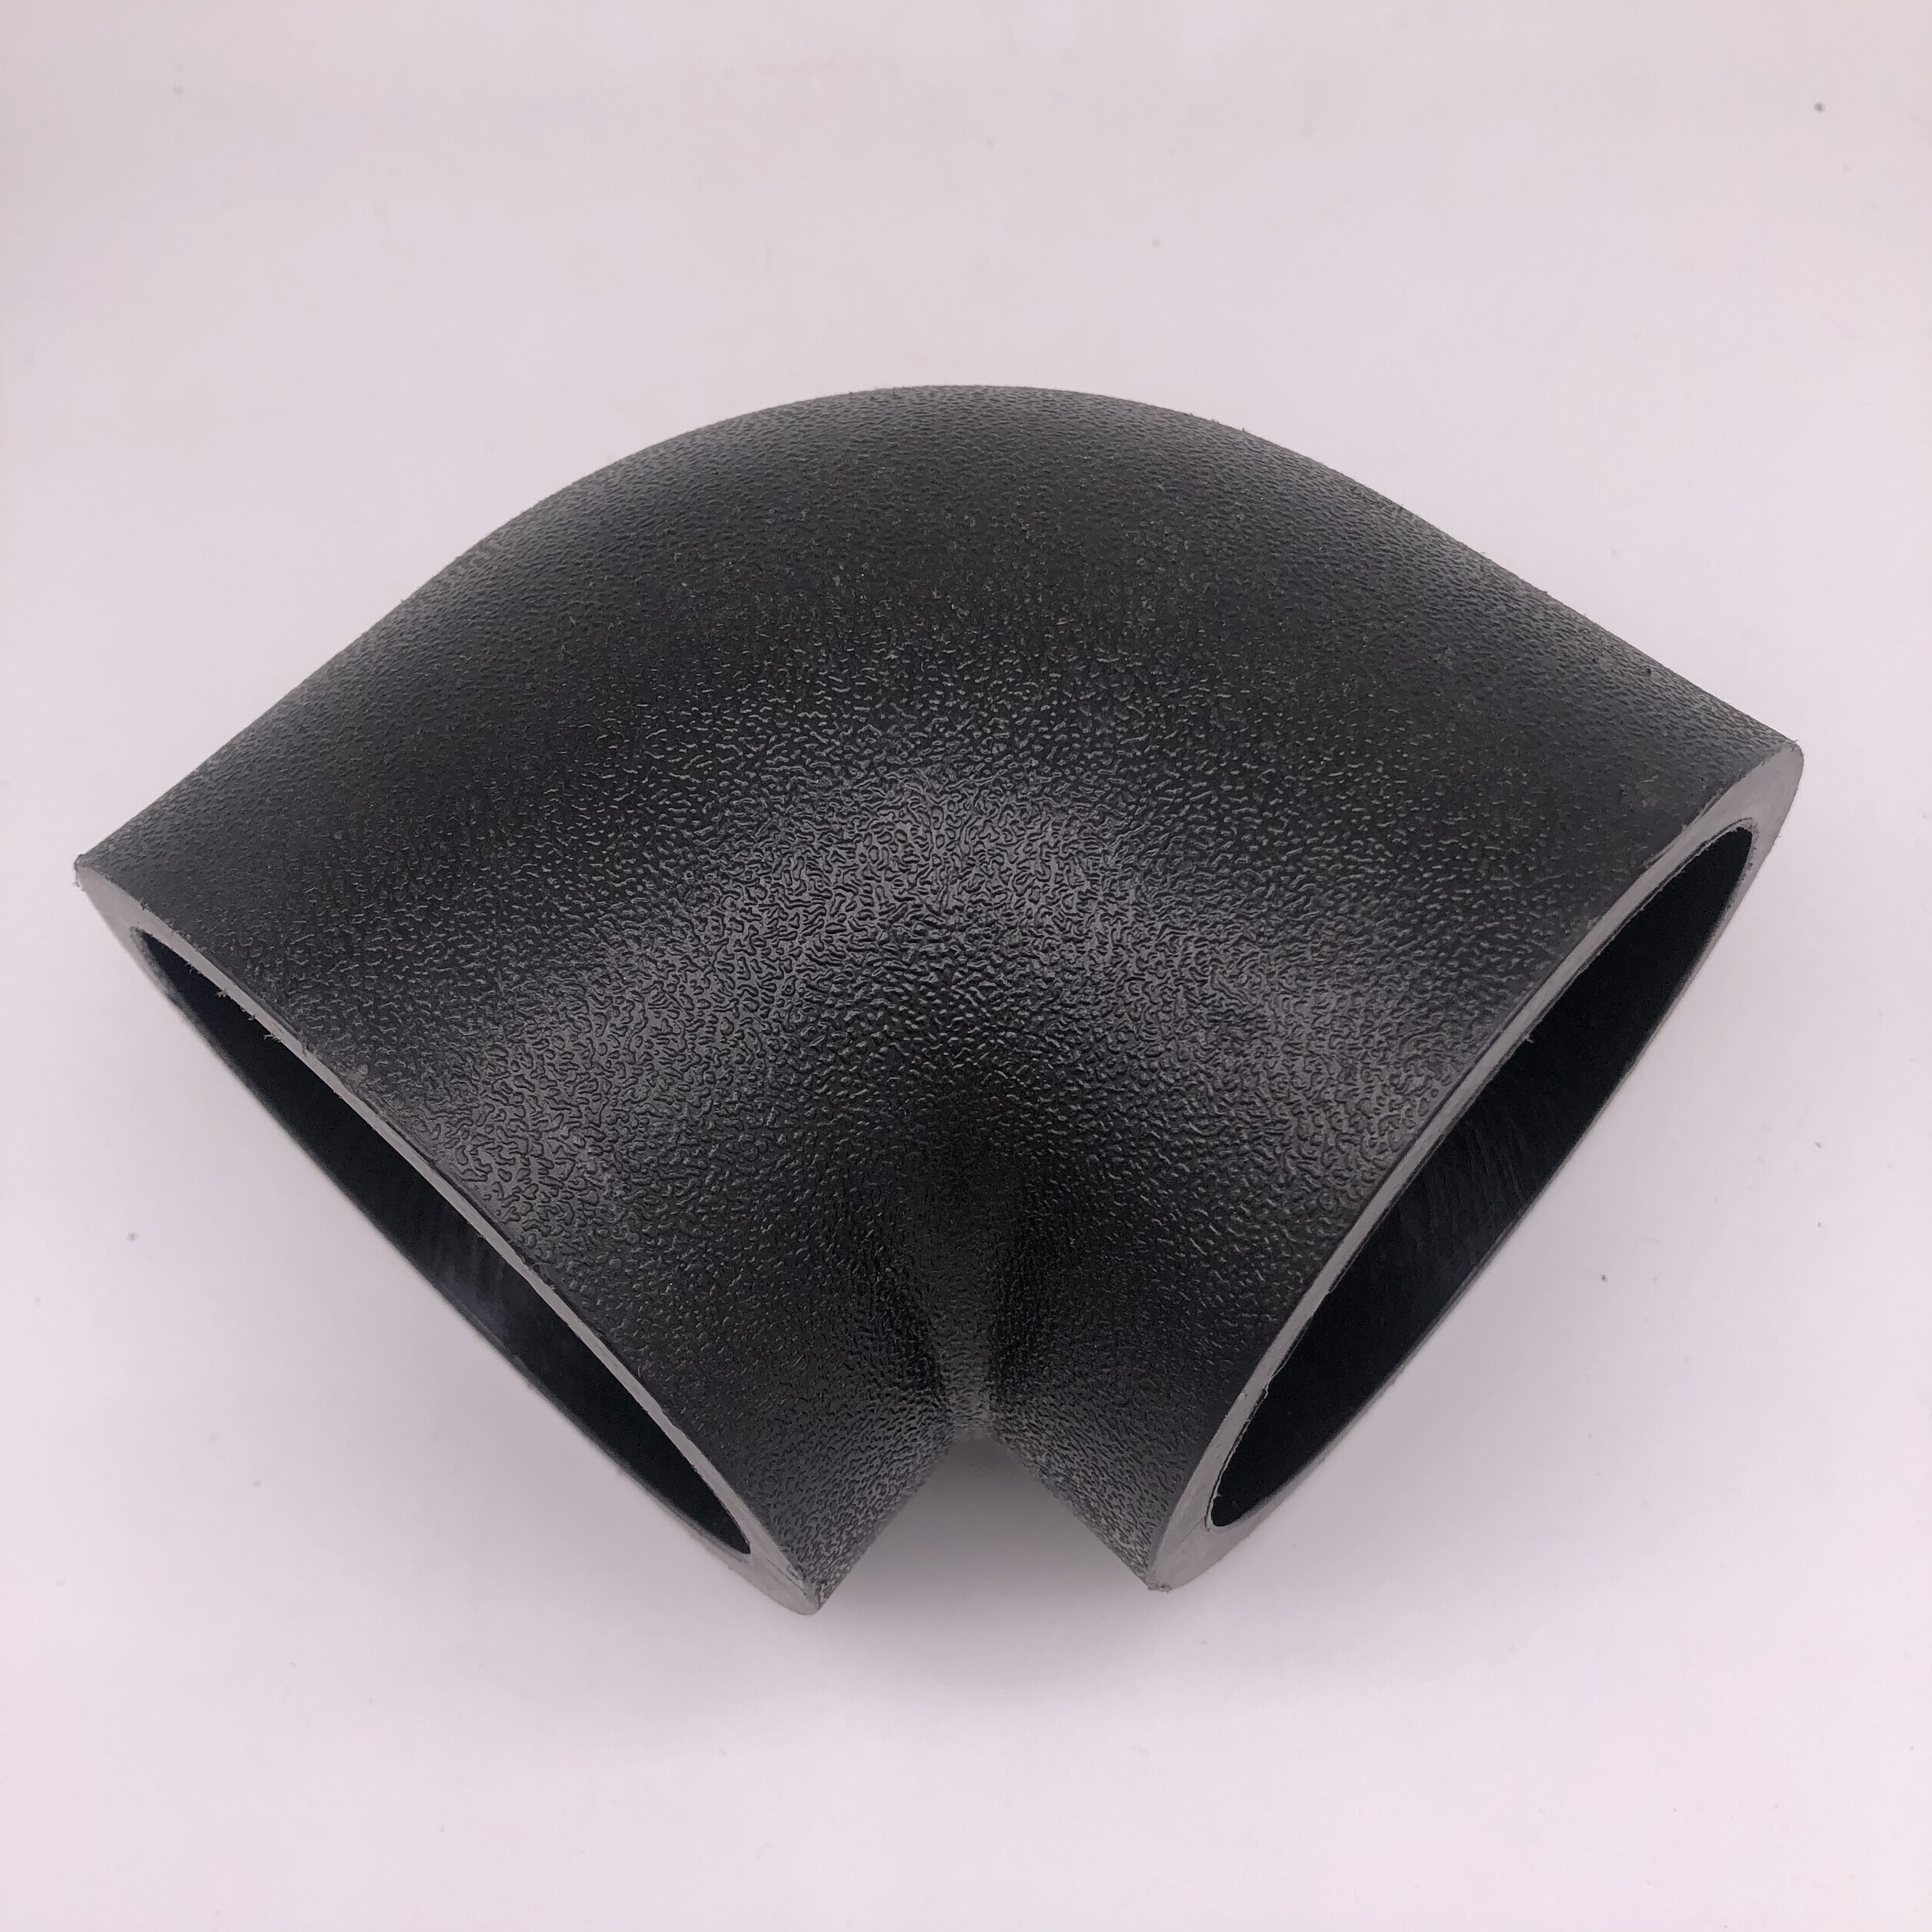 2&quot; sch40 Certificate elbow fittings Sheet Plastic Polycarbonate Origin Impact original q&amp;q plastic <strong>PVC</strong> Seamless